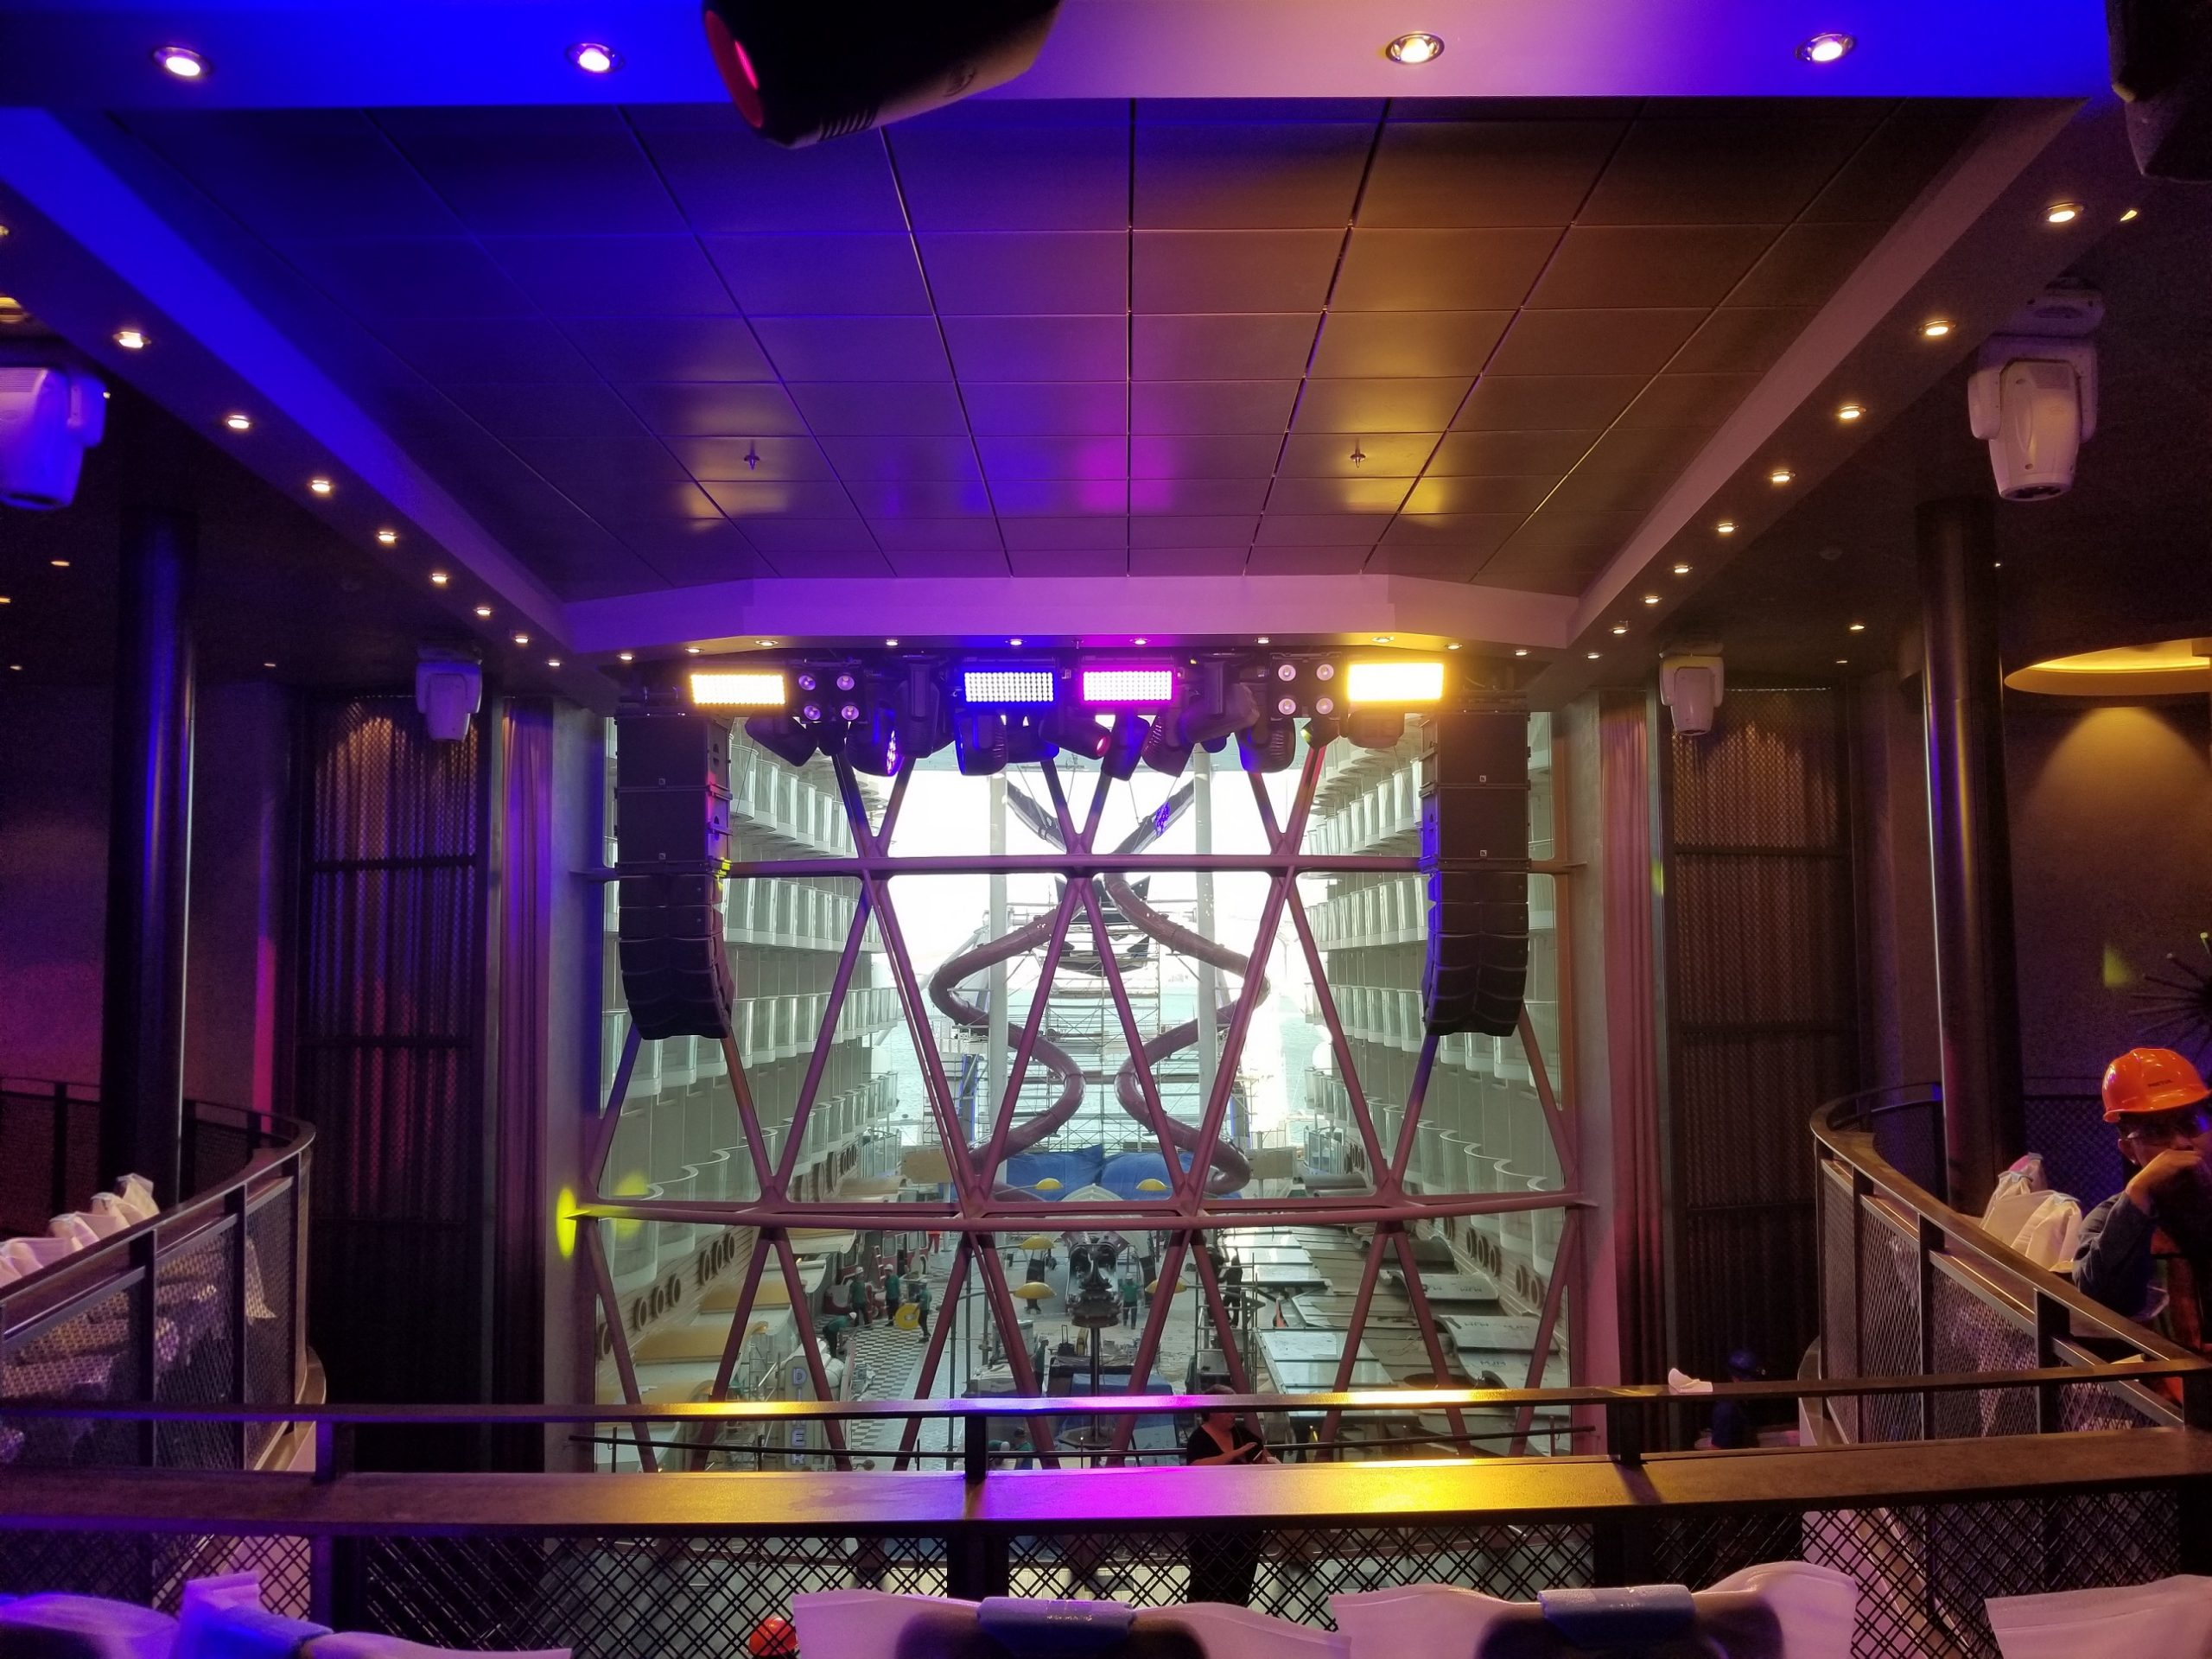 Royal Caribbean International: Oasis of the Seas featured image